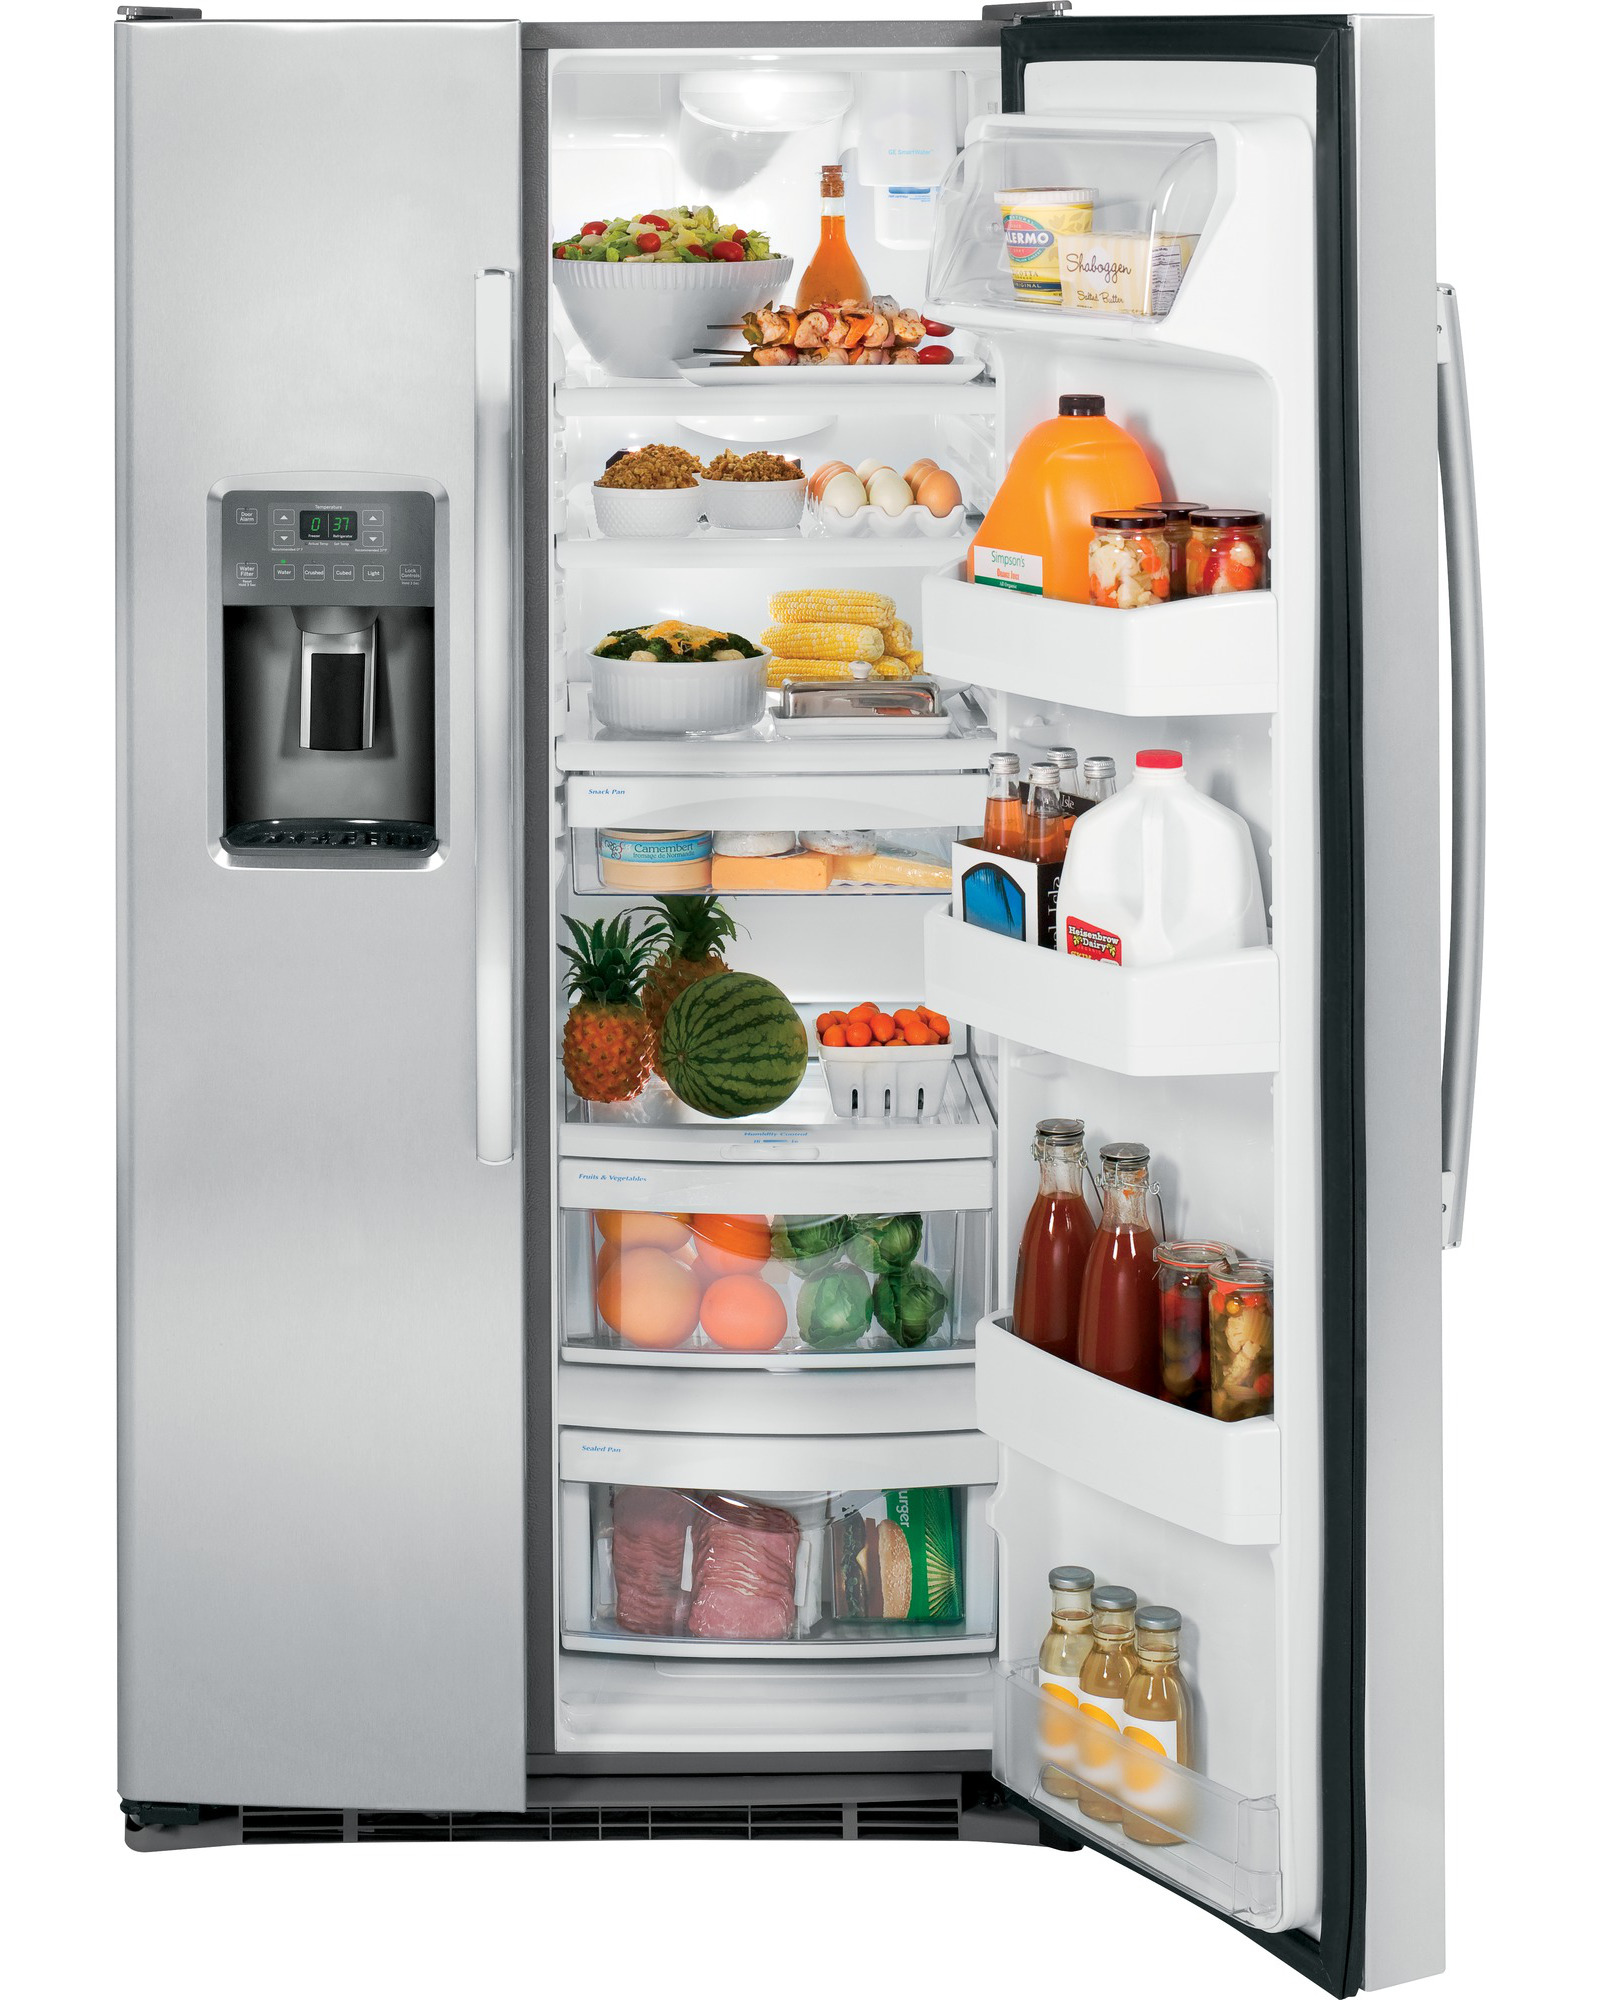 GE Appliances GSE25GSHSS 25.4 cu. ft. Side-by-Side Refrigerator - Stainless Steel